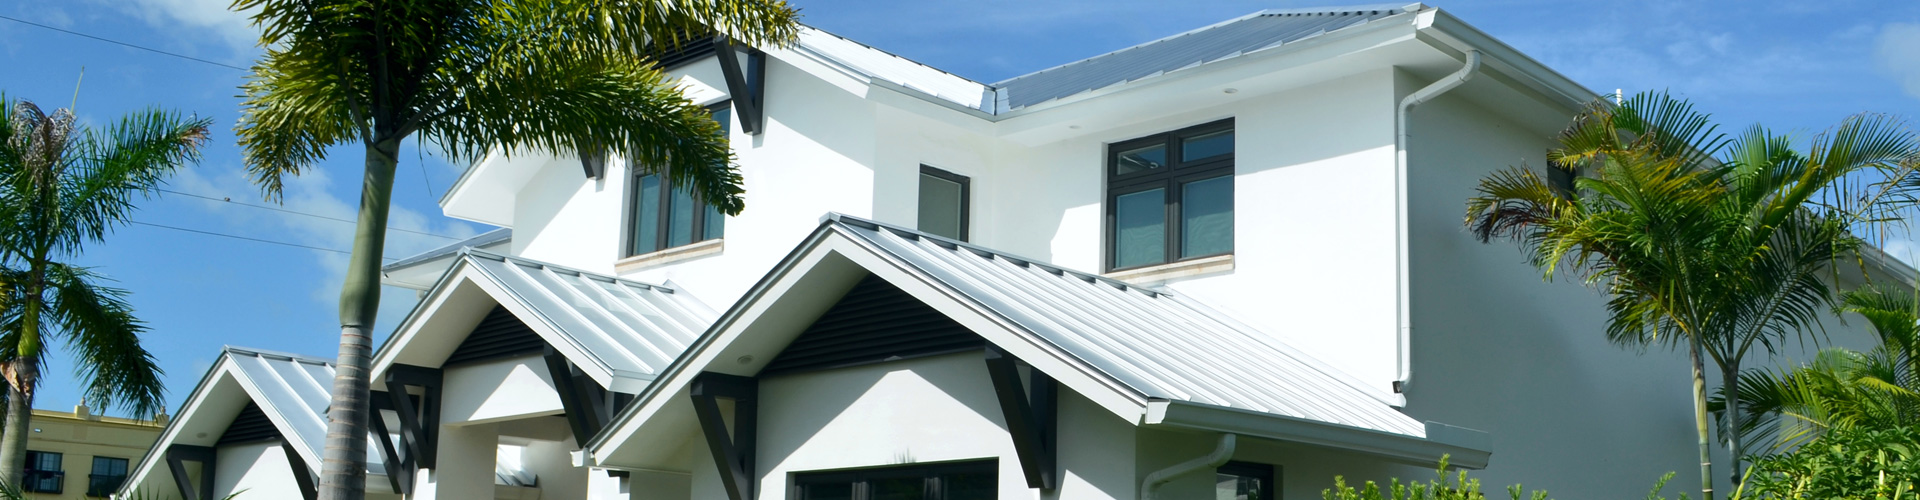 Metal Roofing Services in Naples, Florida